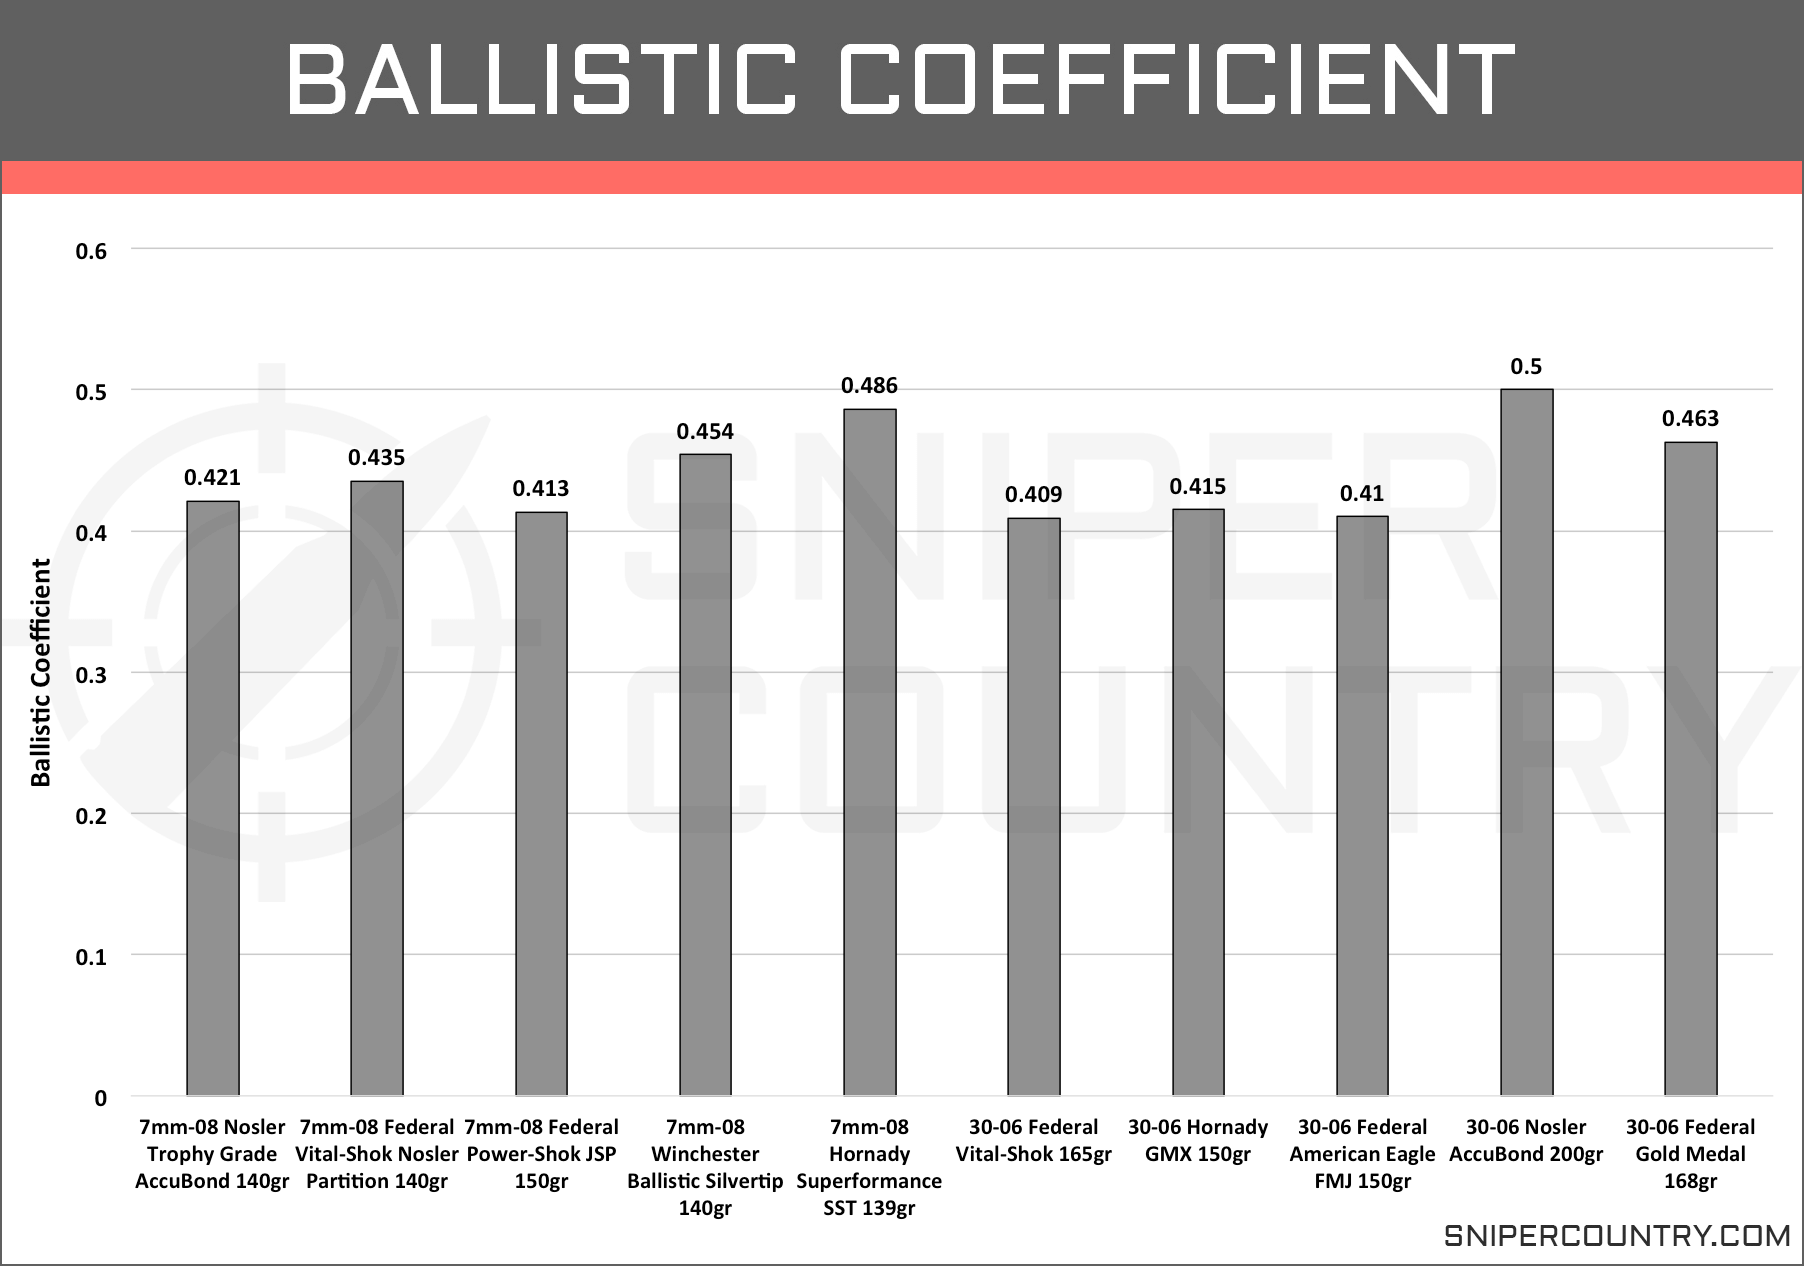 Ballistic Coefficient 7mm-08 vs .30-06